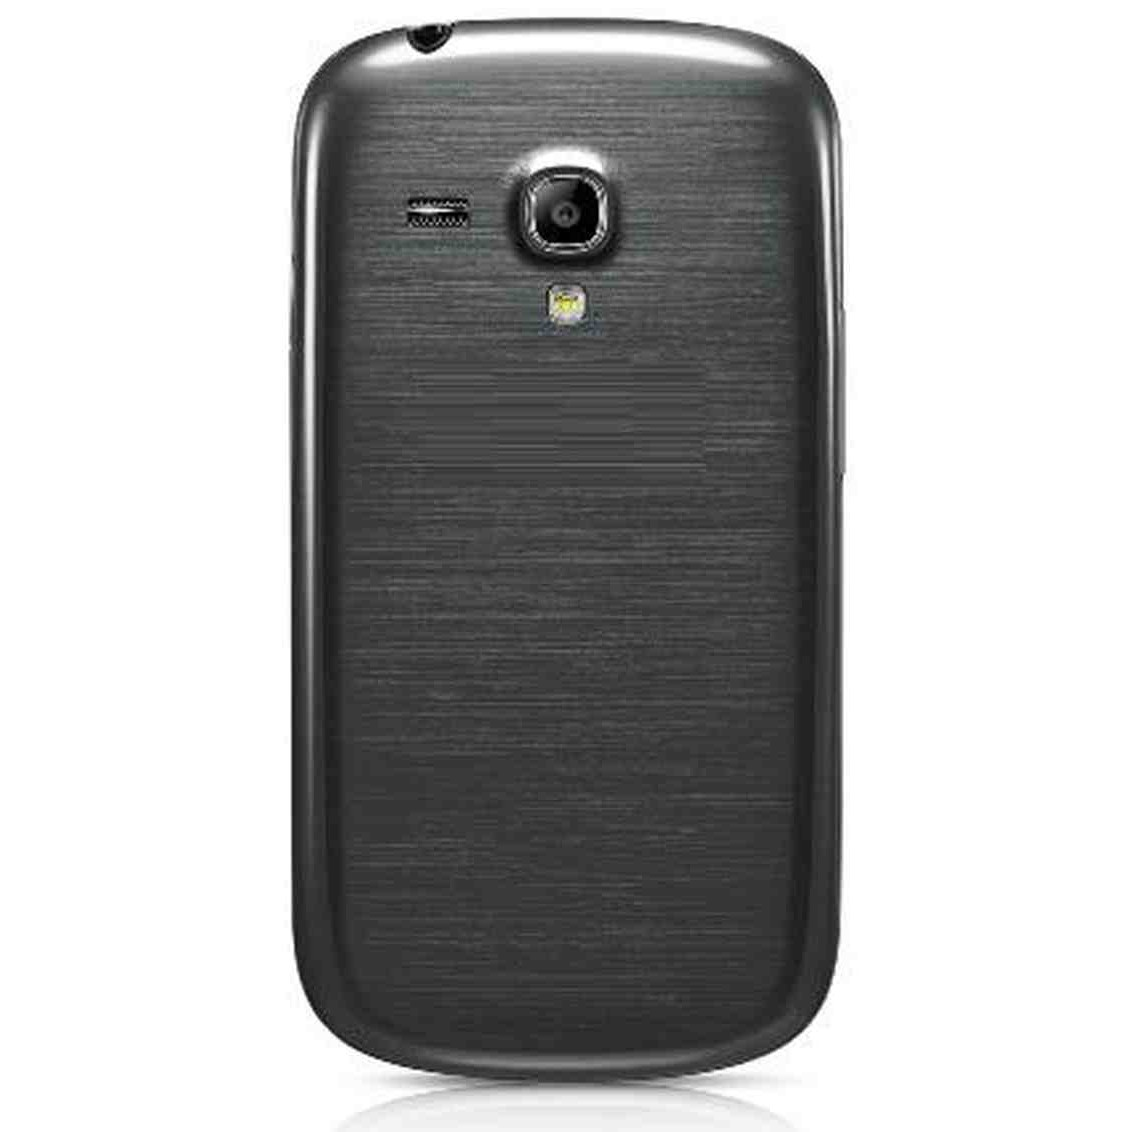 low cost 2c41d 16b77 Back Panel Cover for Samsung Galaxy S3 Mini VE I8200 - Grey